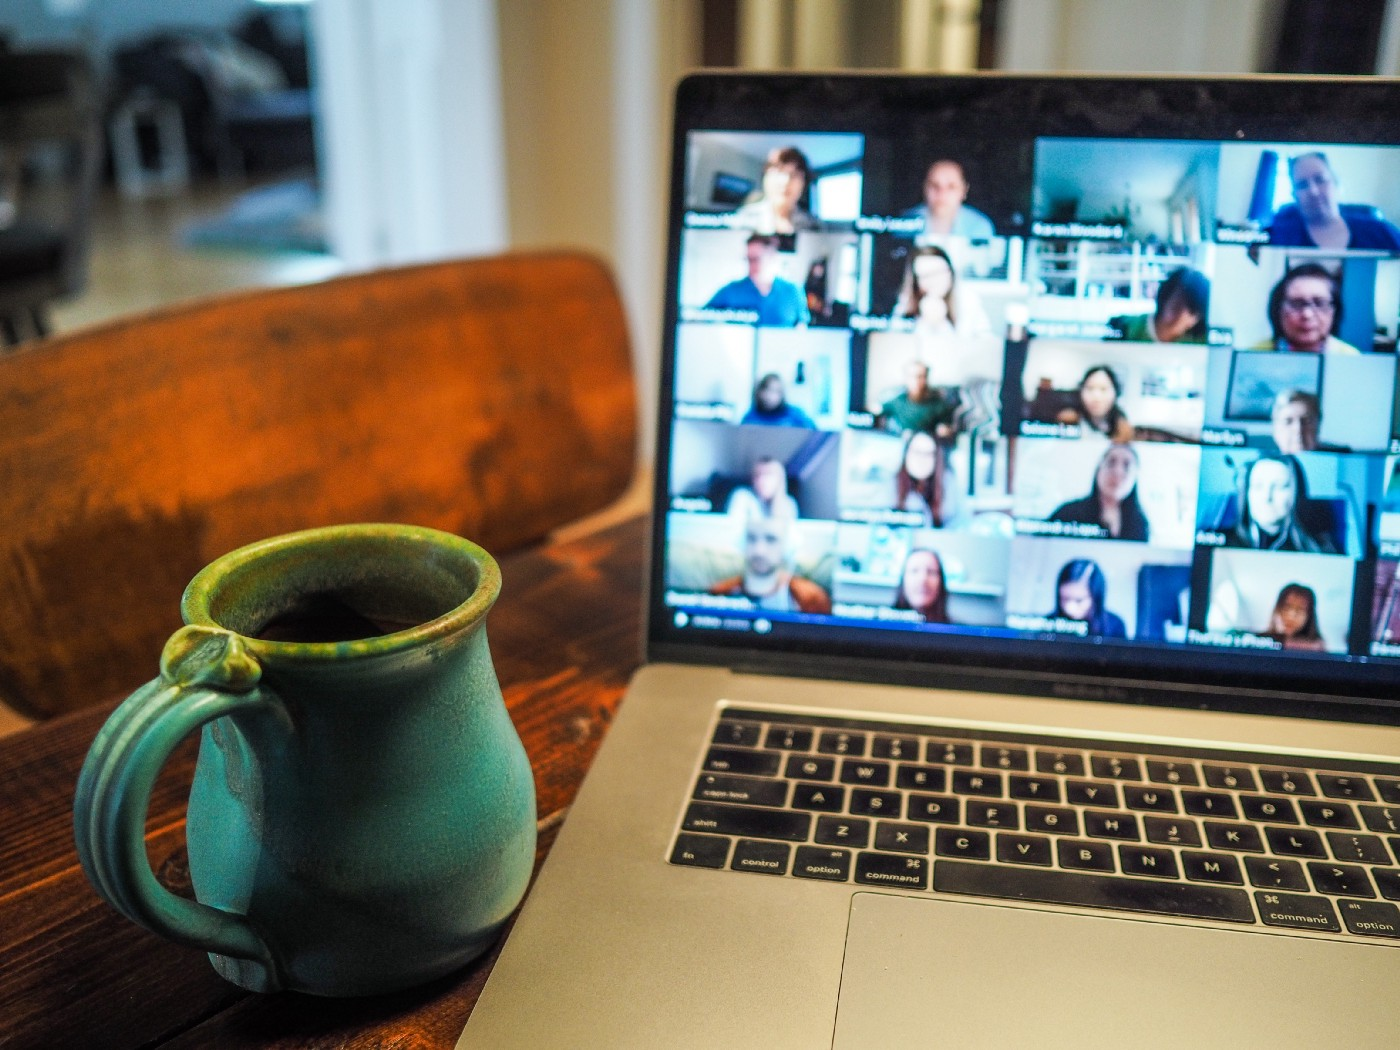 A laptop computer, with a mug beside it, shows many faces in a Zoom online conference.